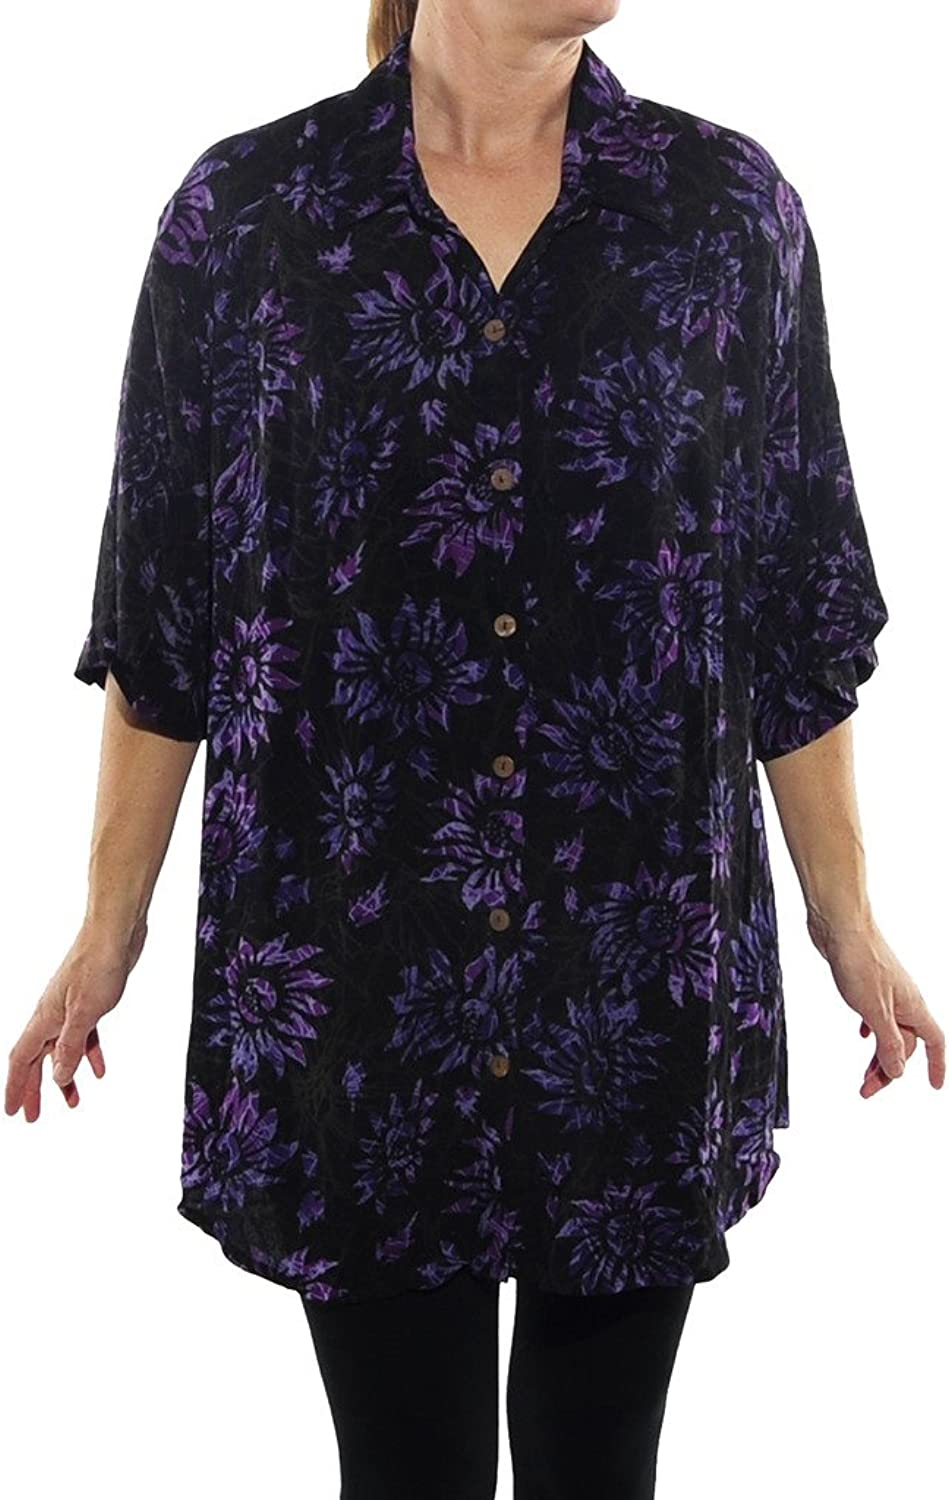 WeBeBop Womens Plus Size Flower Candy New Tunic Top